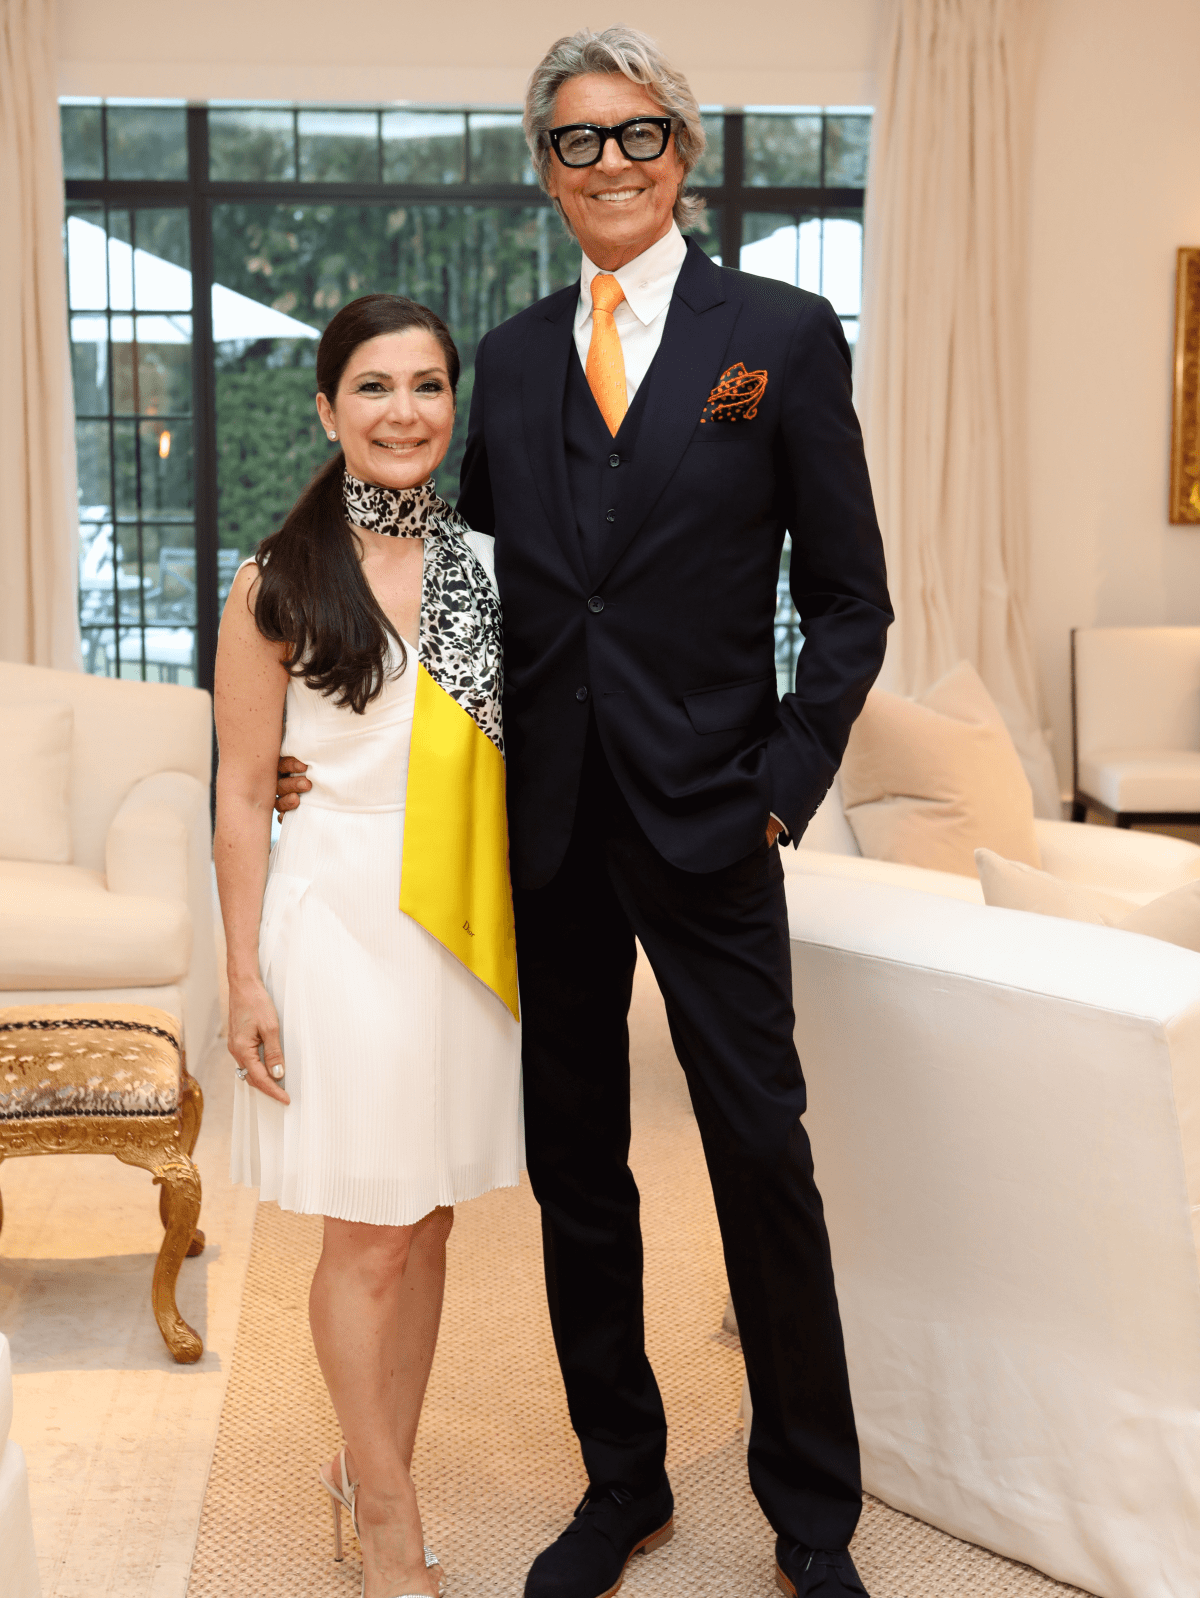 Houston, Cynthia and Anthony Petrello cocktail reception for Tommy Tune, Nov. 2016, Cynthia Petrello, Tommy Tune